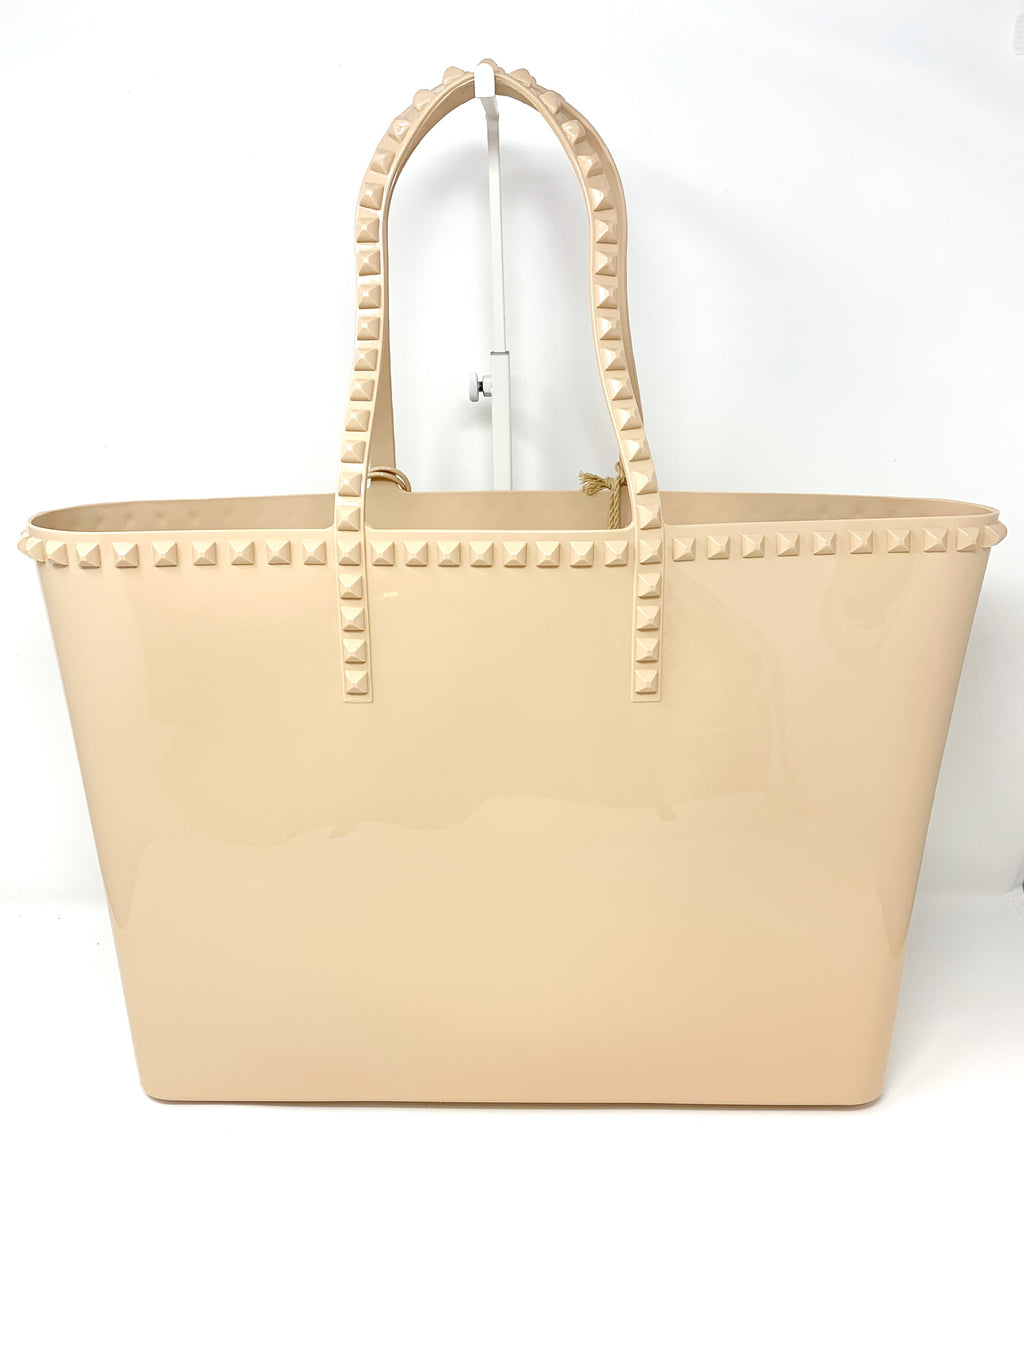 Studded Jelly Large Tote in Nude